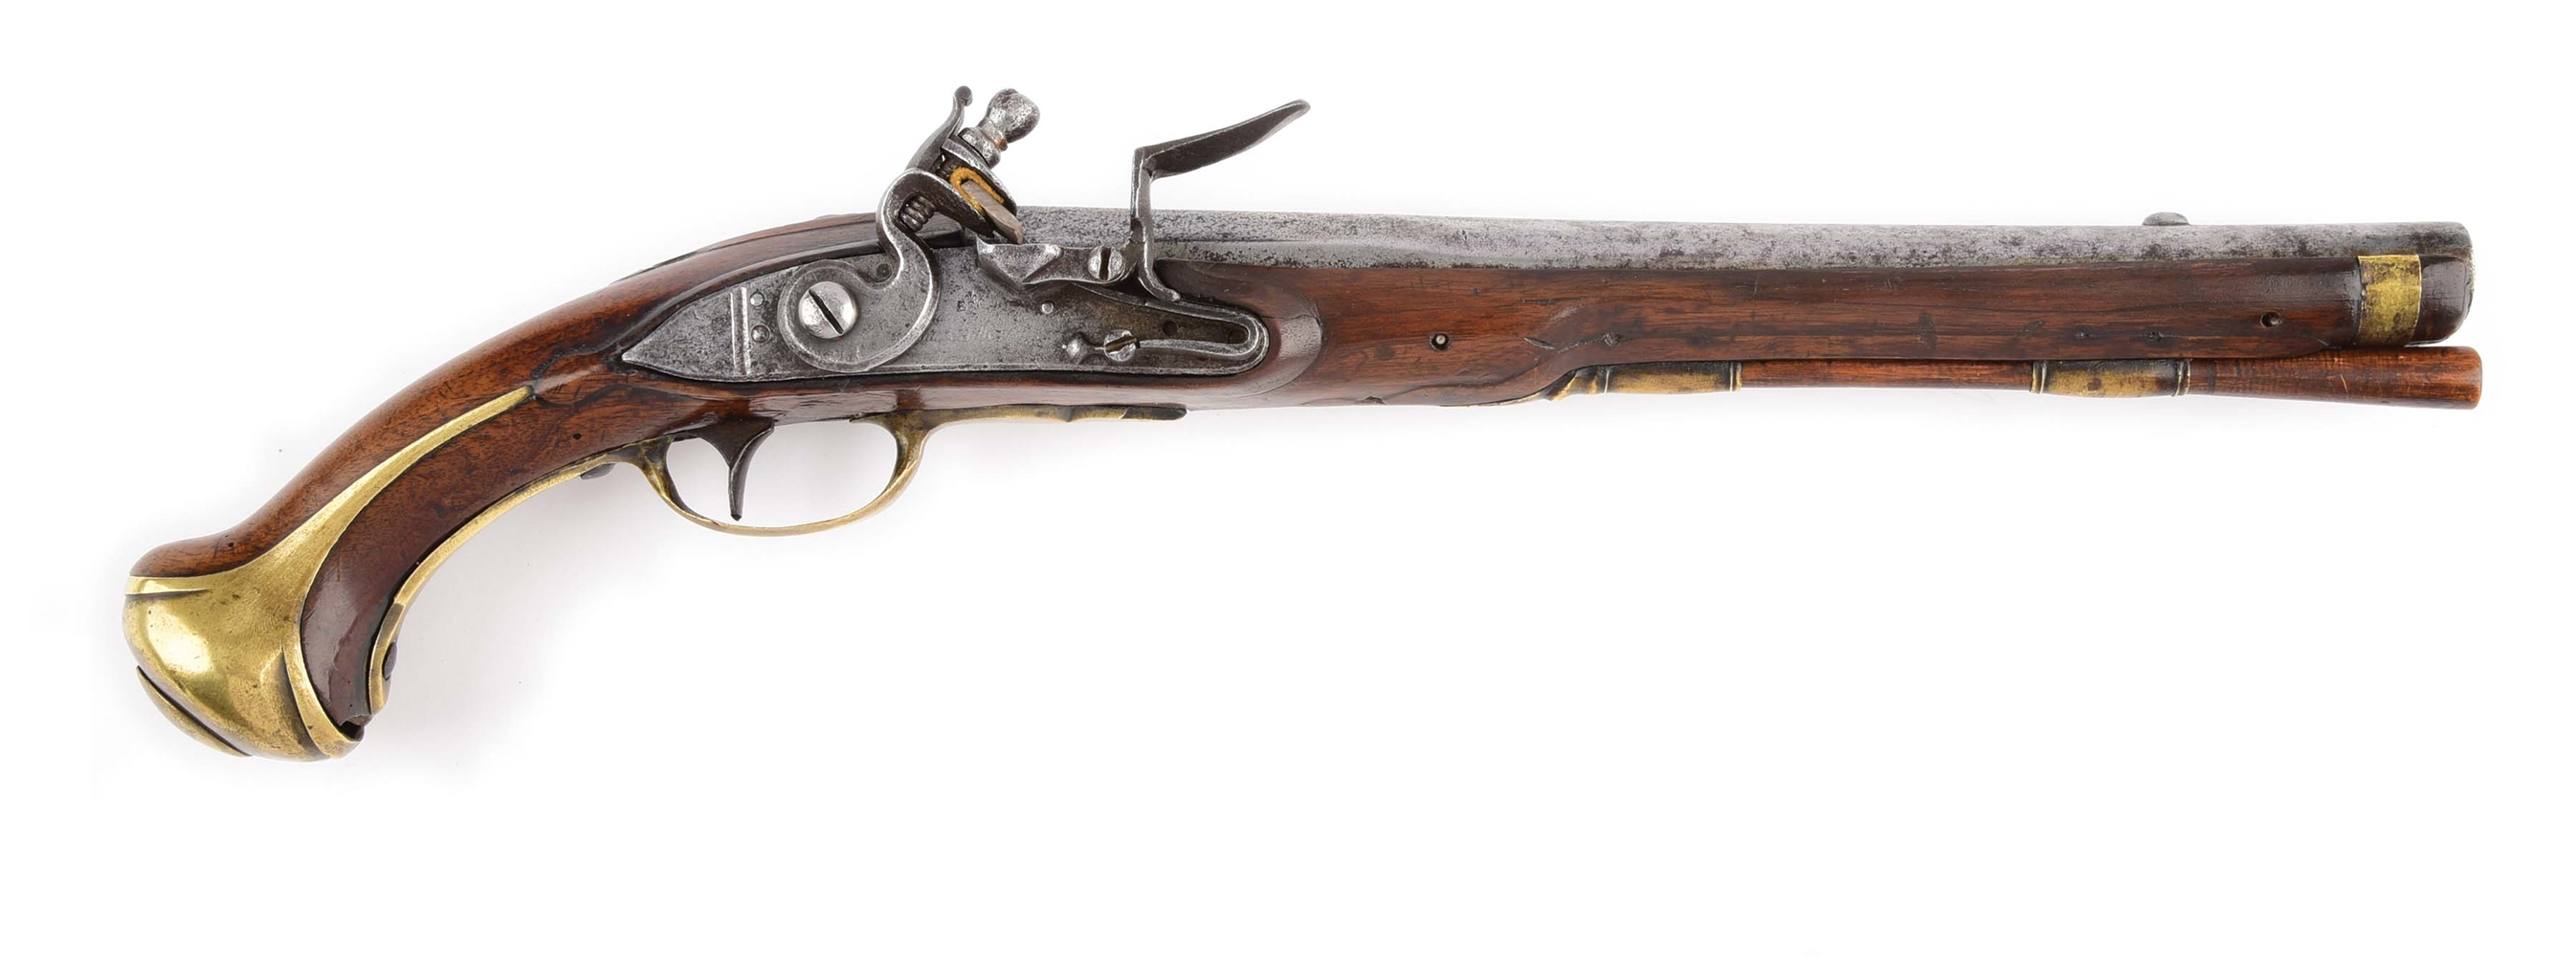 (A) RARE FRENCH MODEL 1733 CAVALRY OR DRAGOON PISTOL PRODUCED AT CHARLEVILLE.